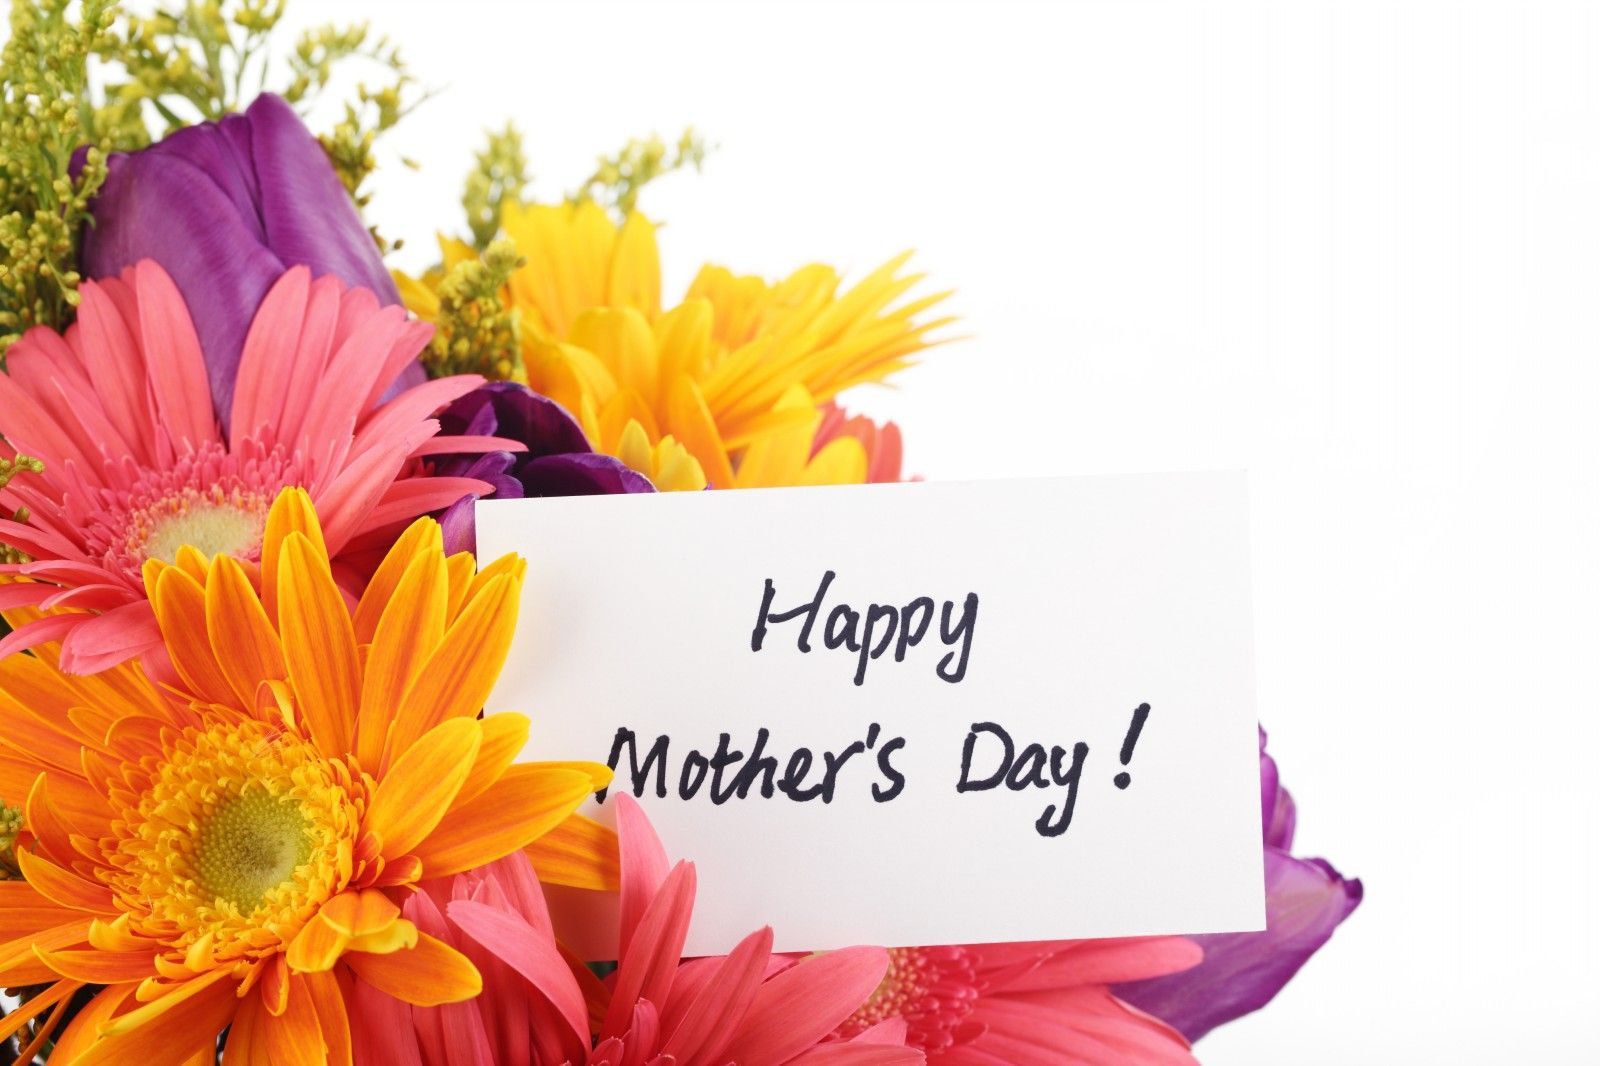 Mothers Day Flowers Background Free Large Images Different